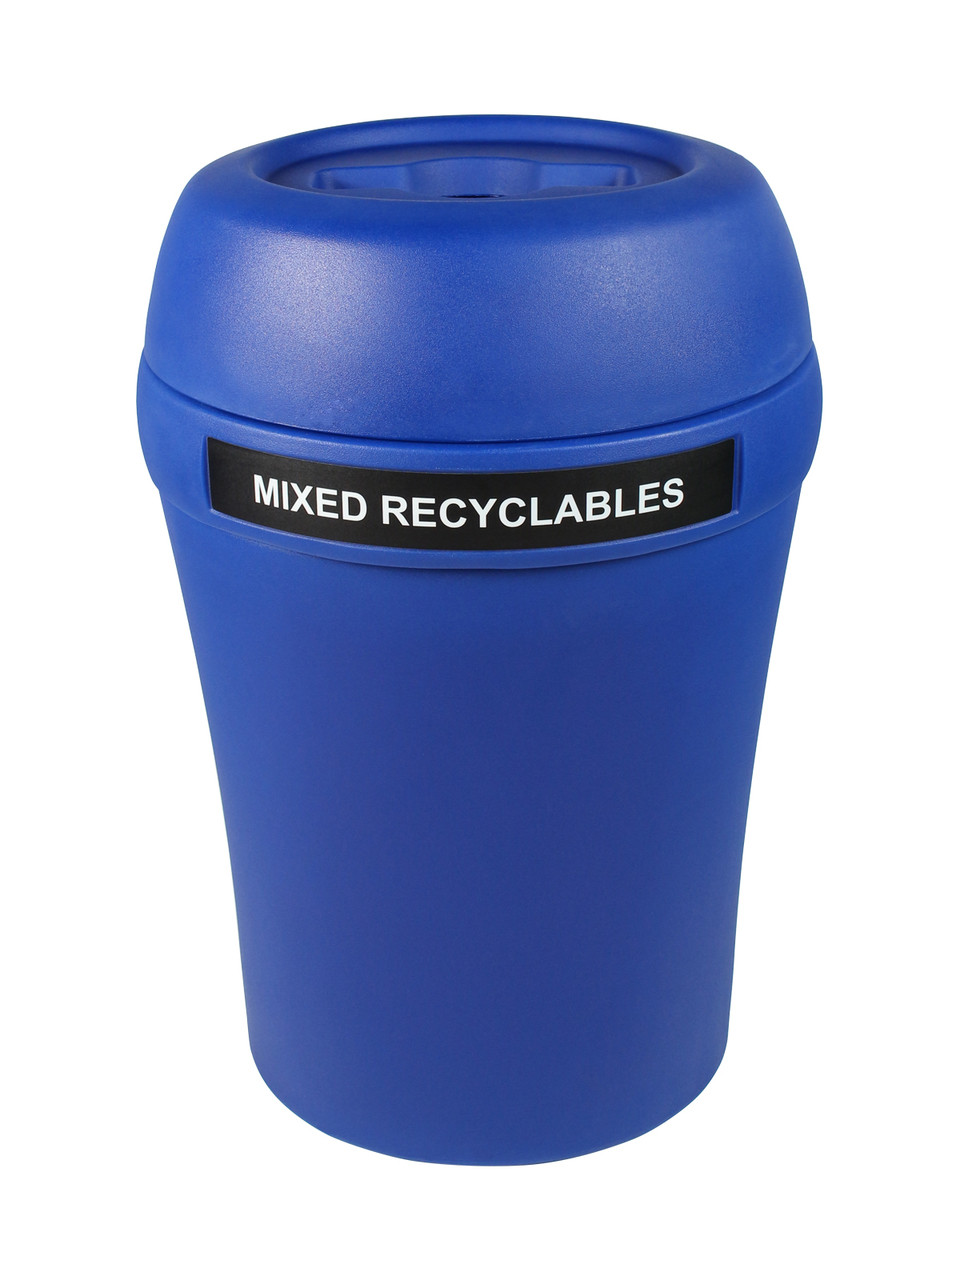 Mixed Recyclables-Blue/Blue-Mixed